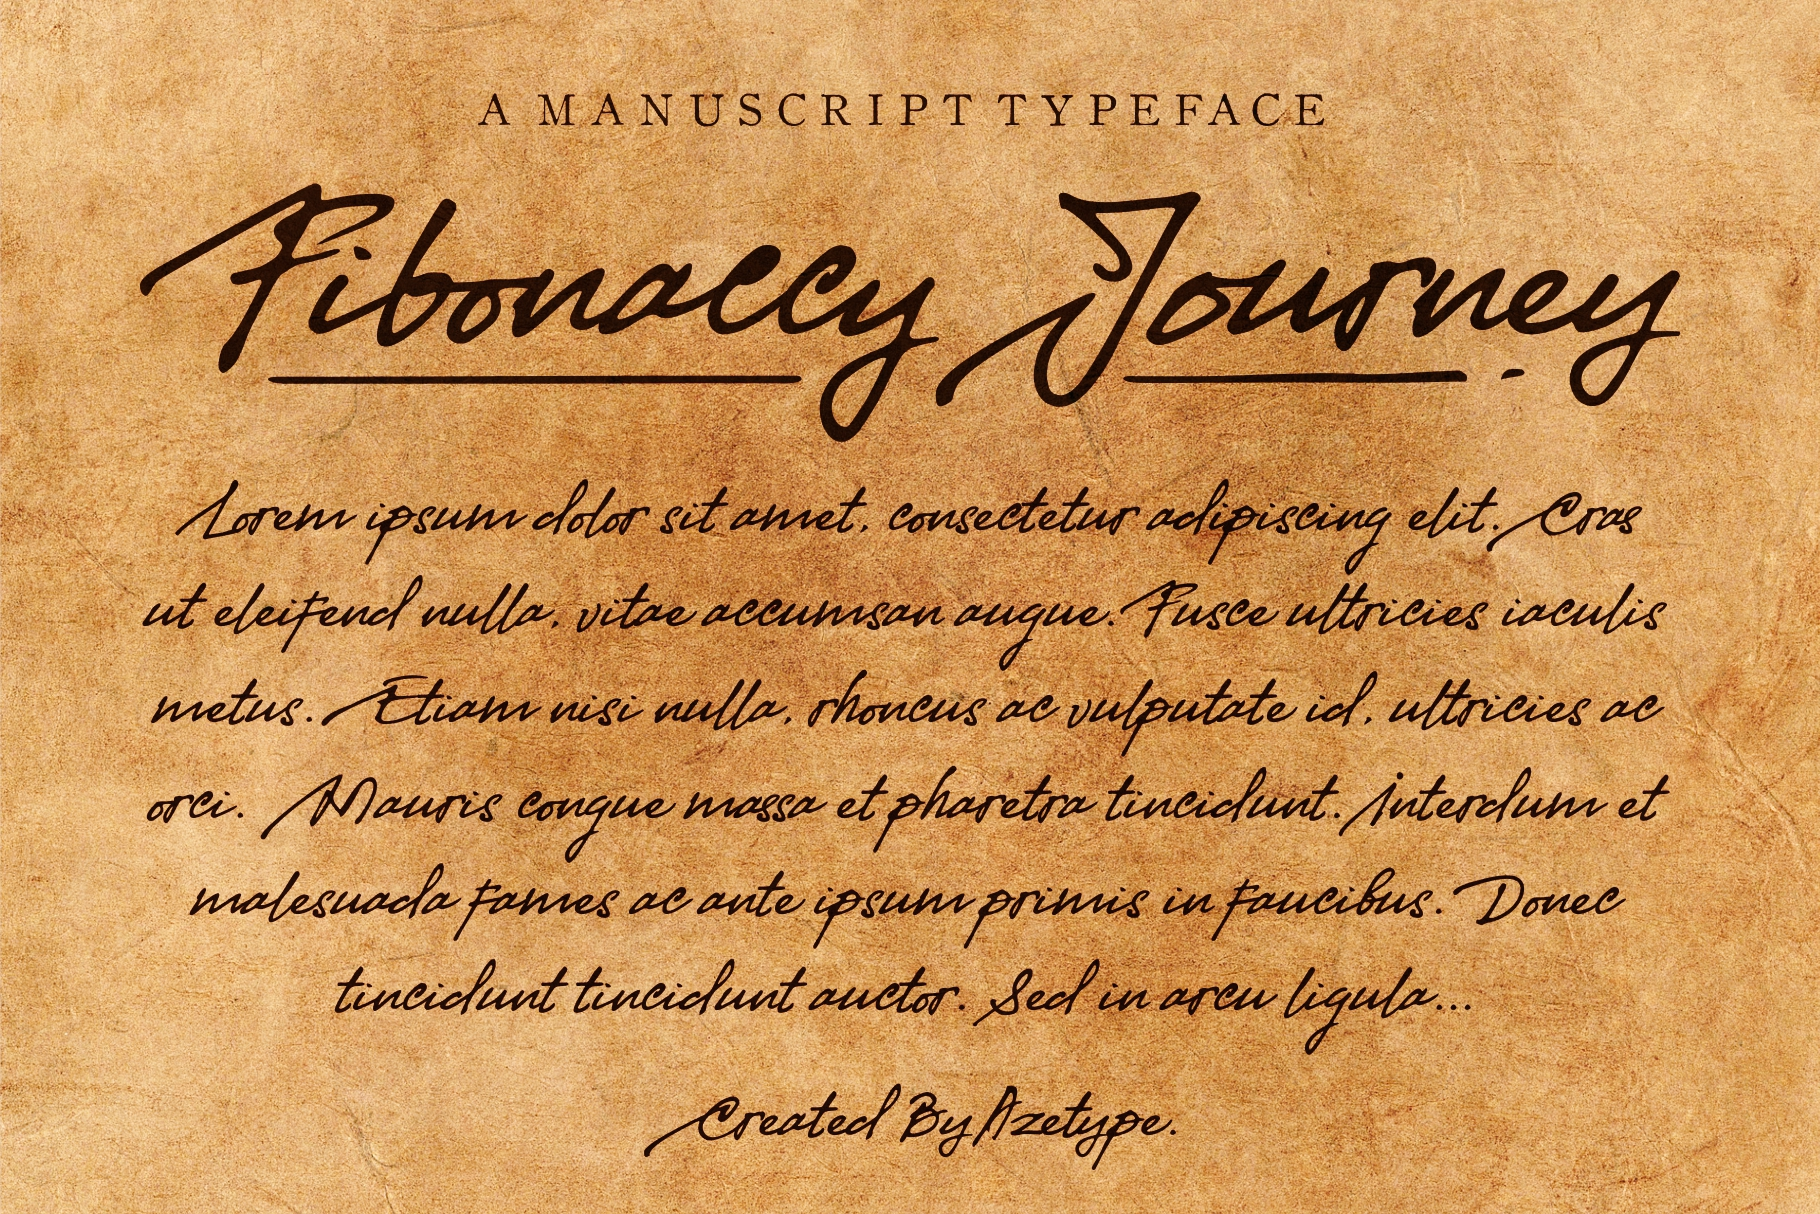 INTRO SALE! Fibonaccy Journey example image 12